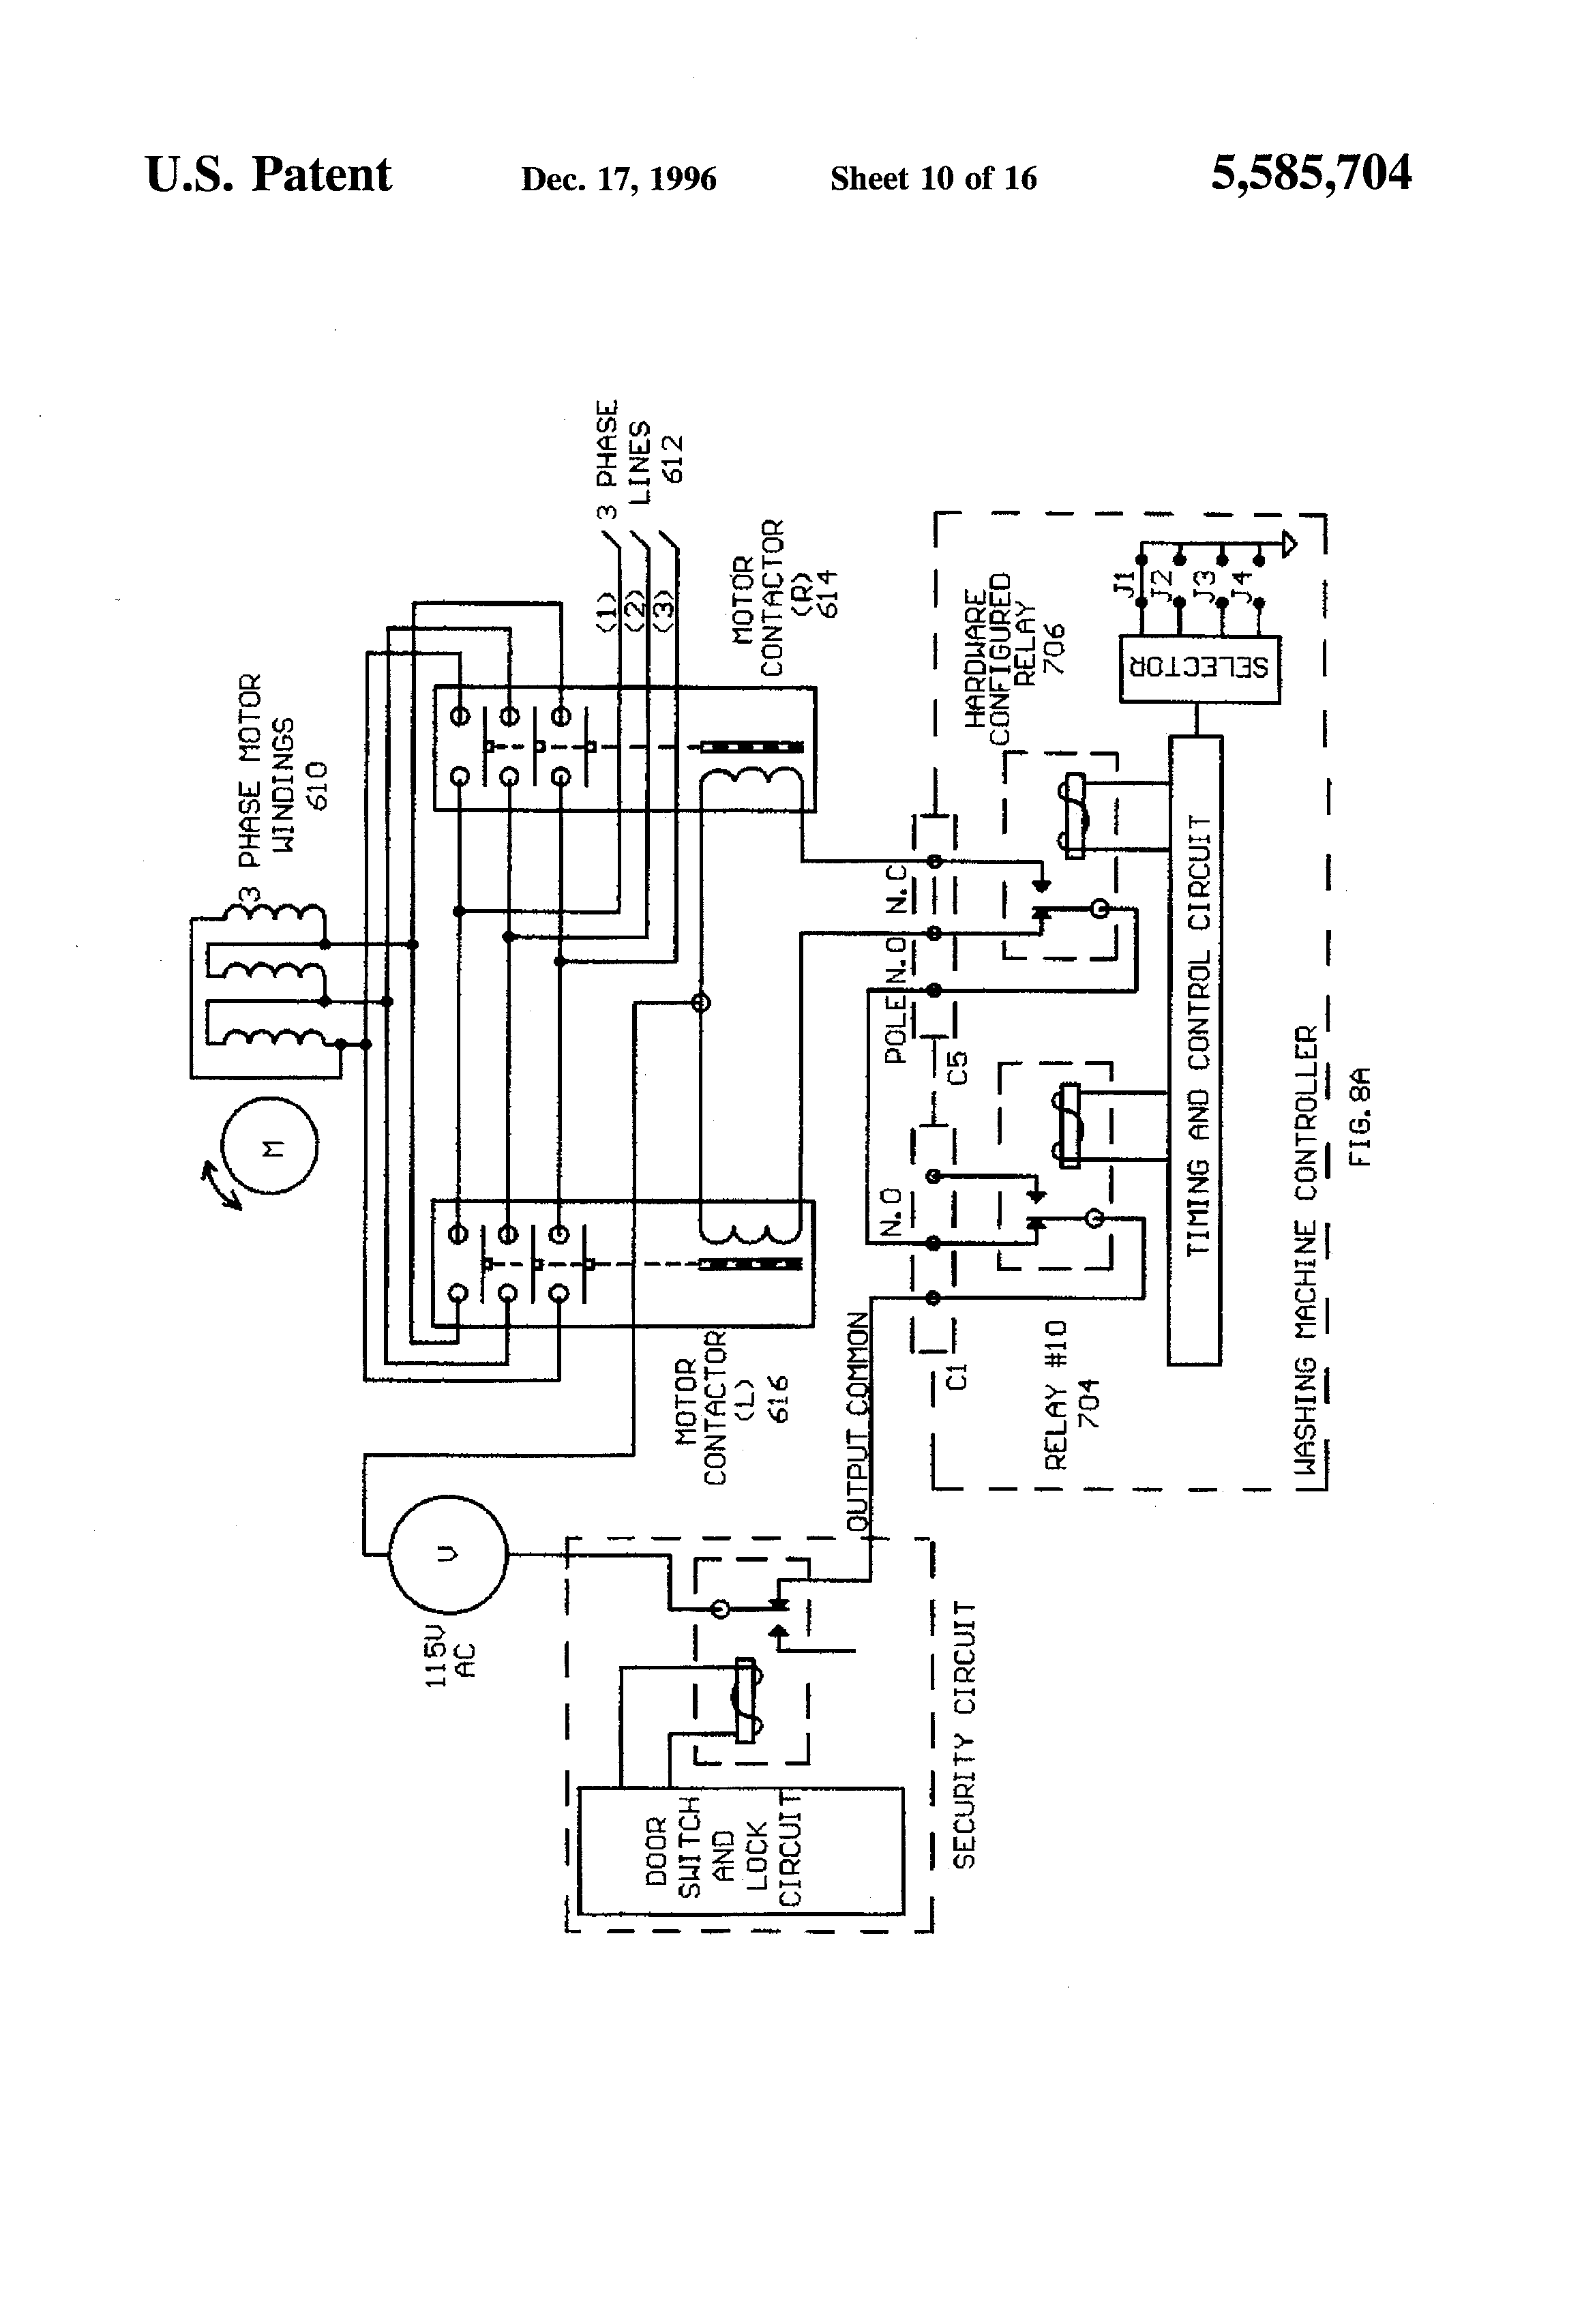 Whirlpool Washer Motor Wiring Diagram Lt7000xvw0 48 Electric Range Us5585704 10 Versa Windo Diagrams Collection At